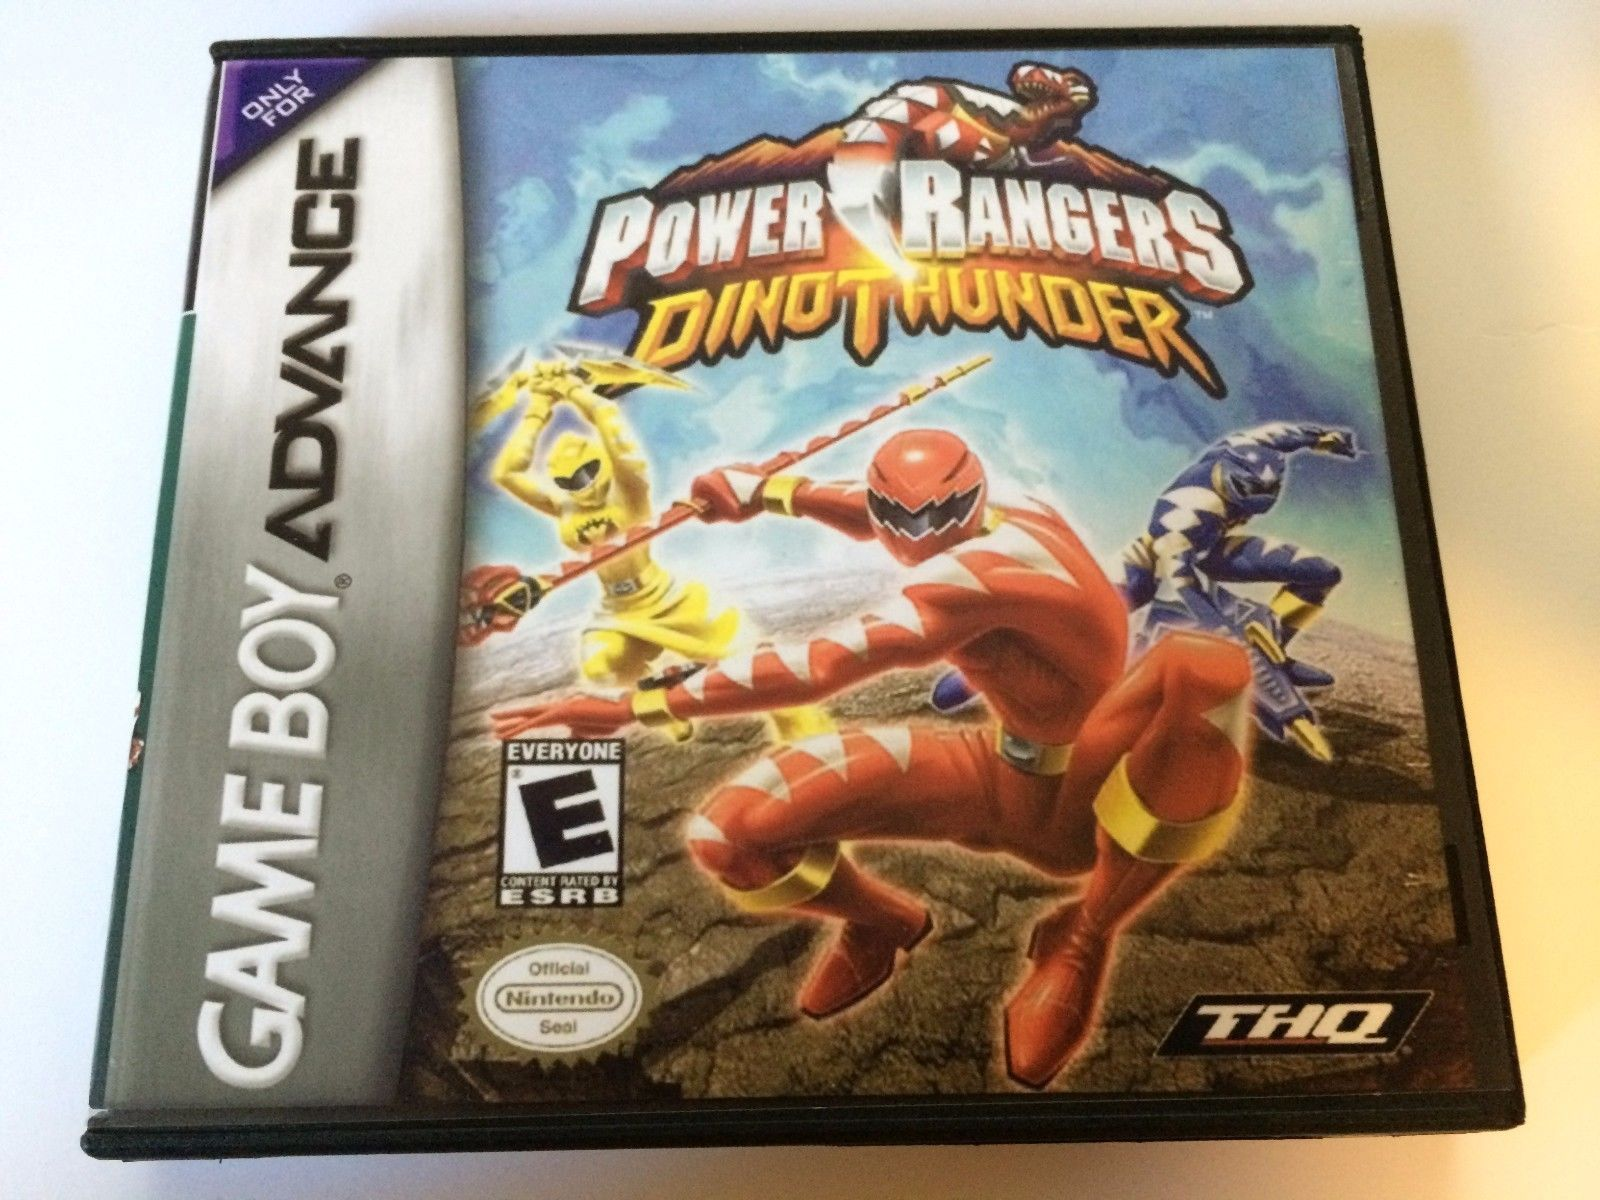 Power Rangers Dino Thunder - GBA - Replacement Case - No Game